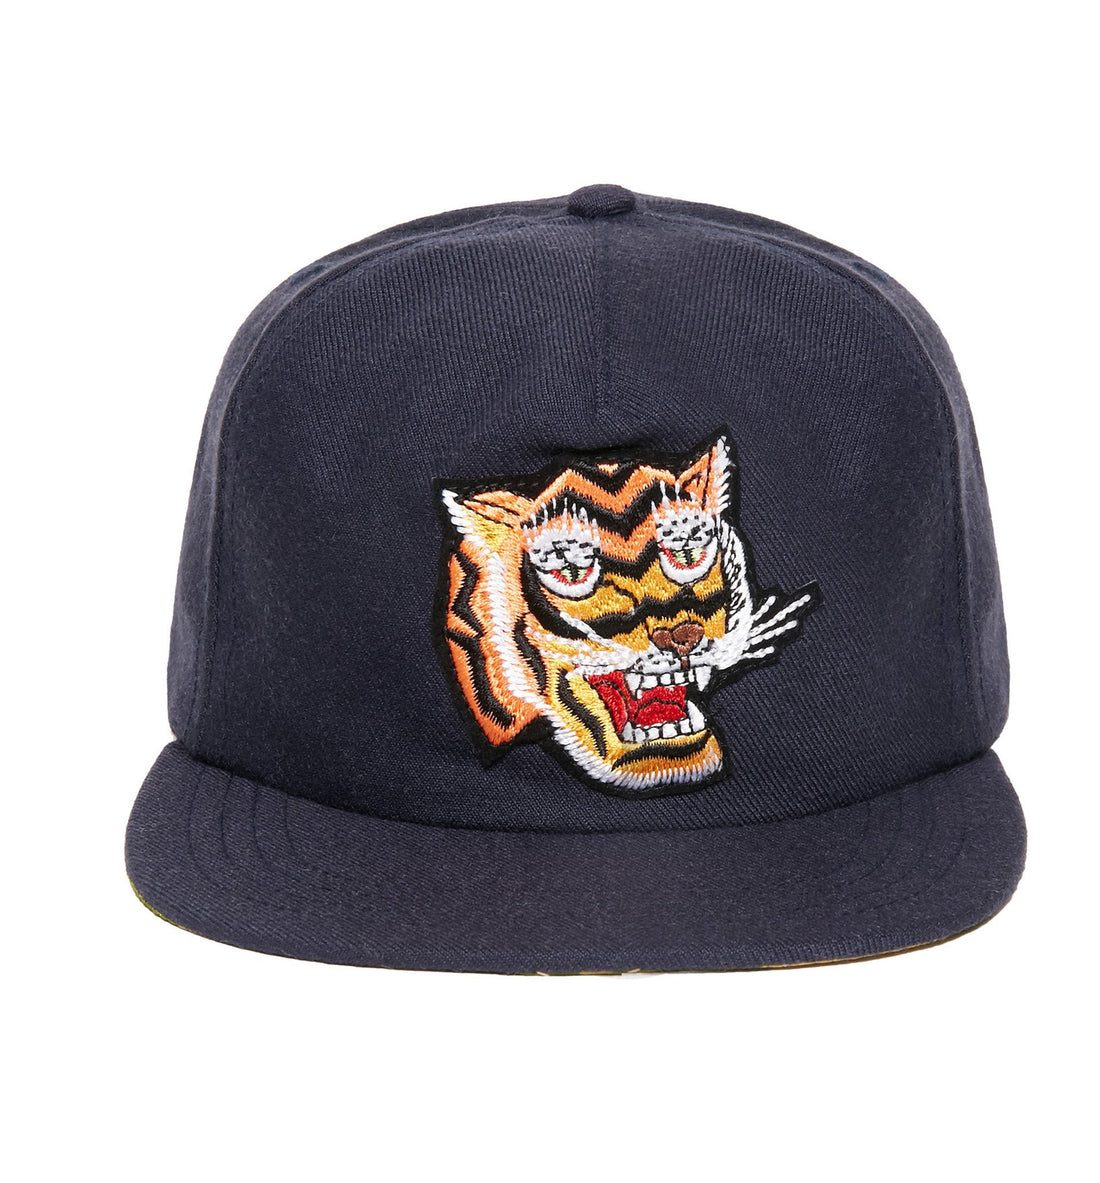 The Ampal Creative Tiger Strapback Hat - Accessories: Headwear: Hats - Iron and Resin